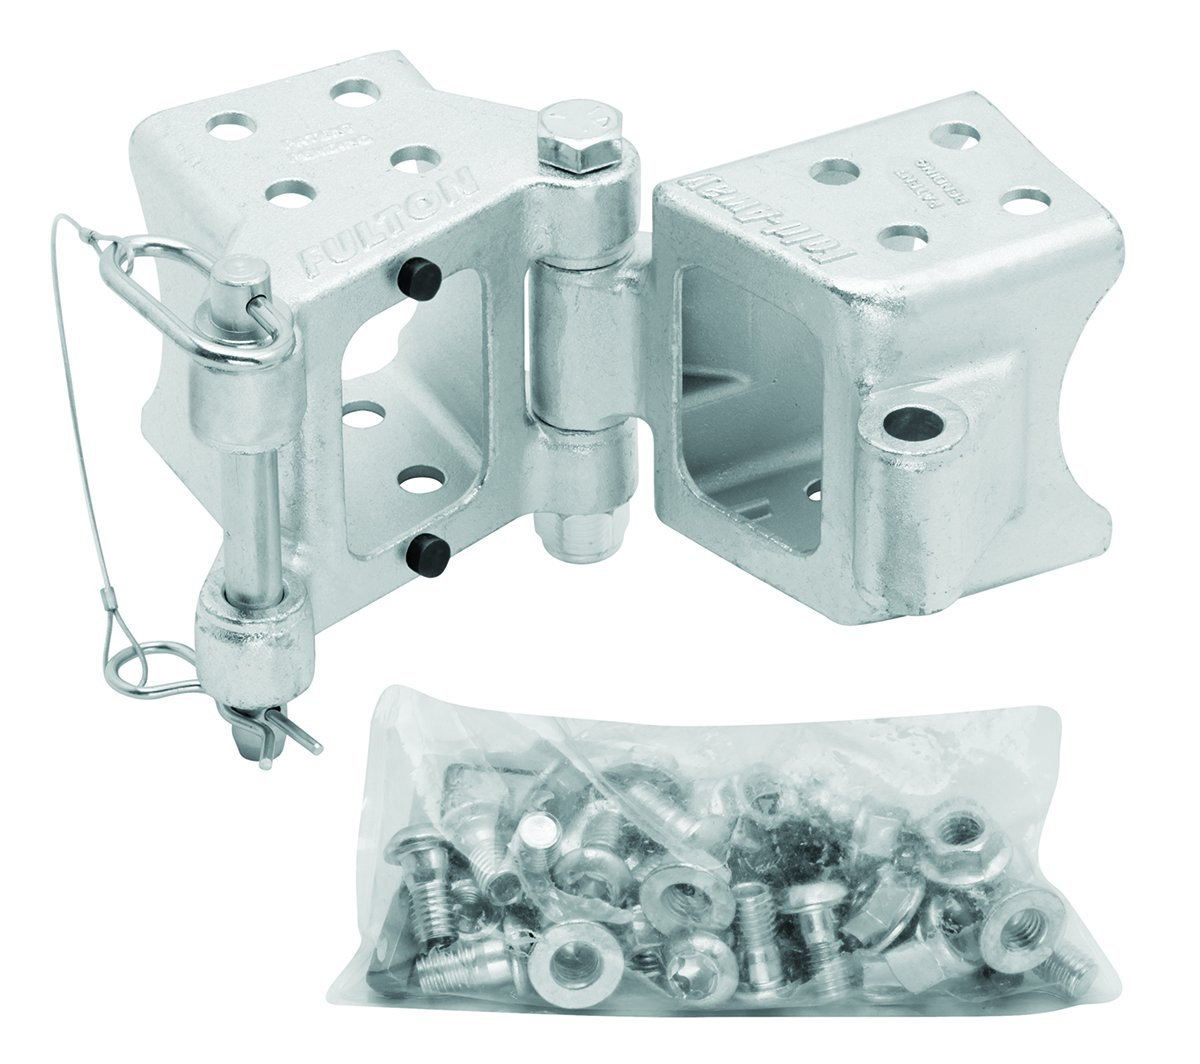 Fulton HDPB340101 Fold-Away Bolt-On Hinge Kit for 3'' x 4'' Trailer Beam - up to 7,500 lb. GTW